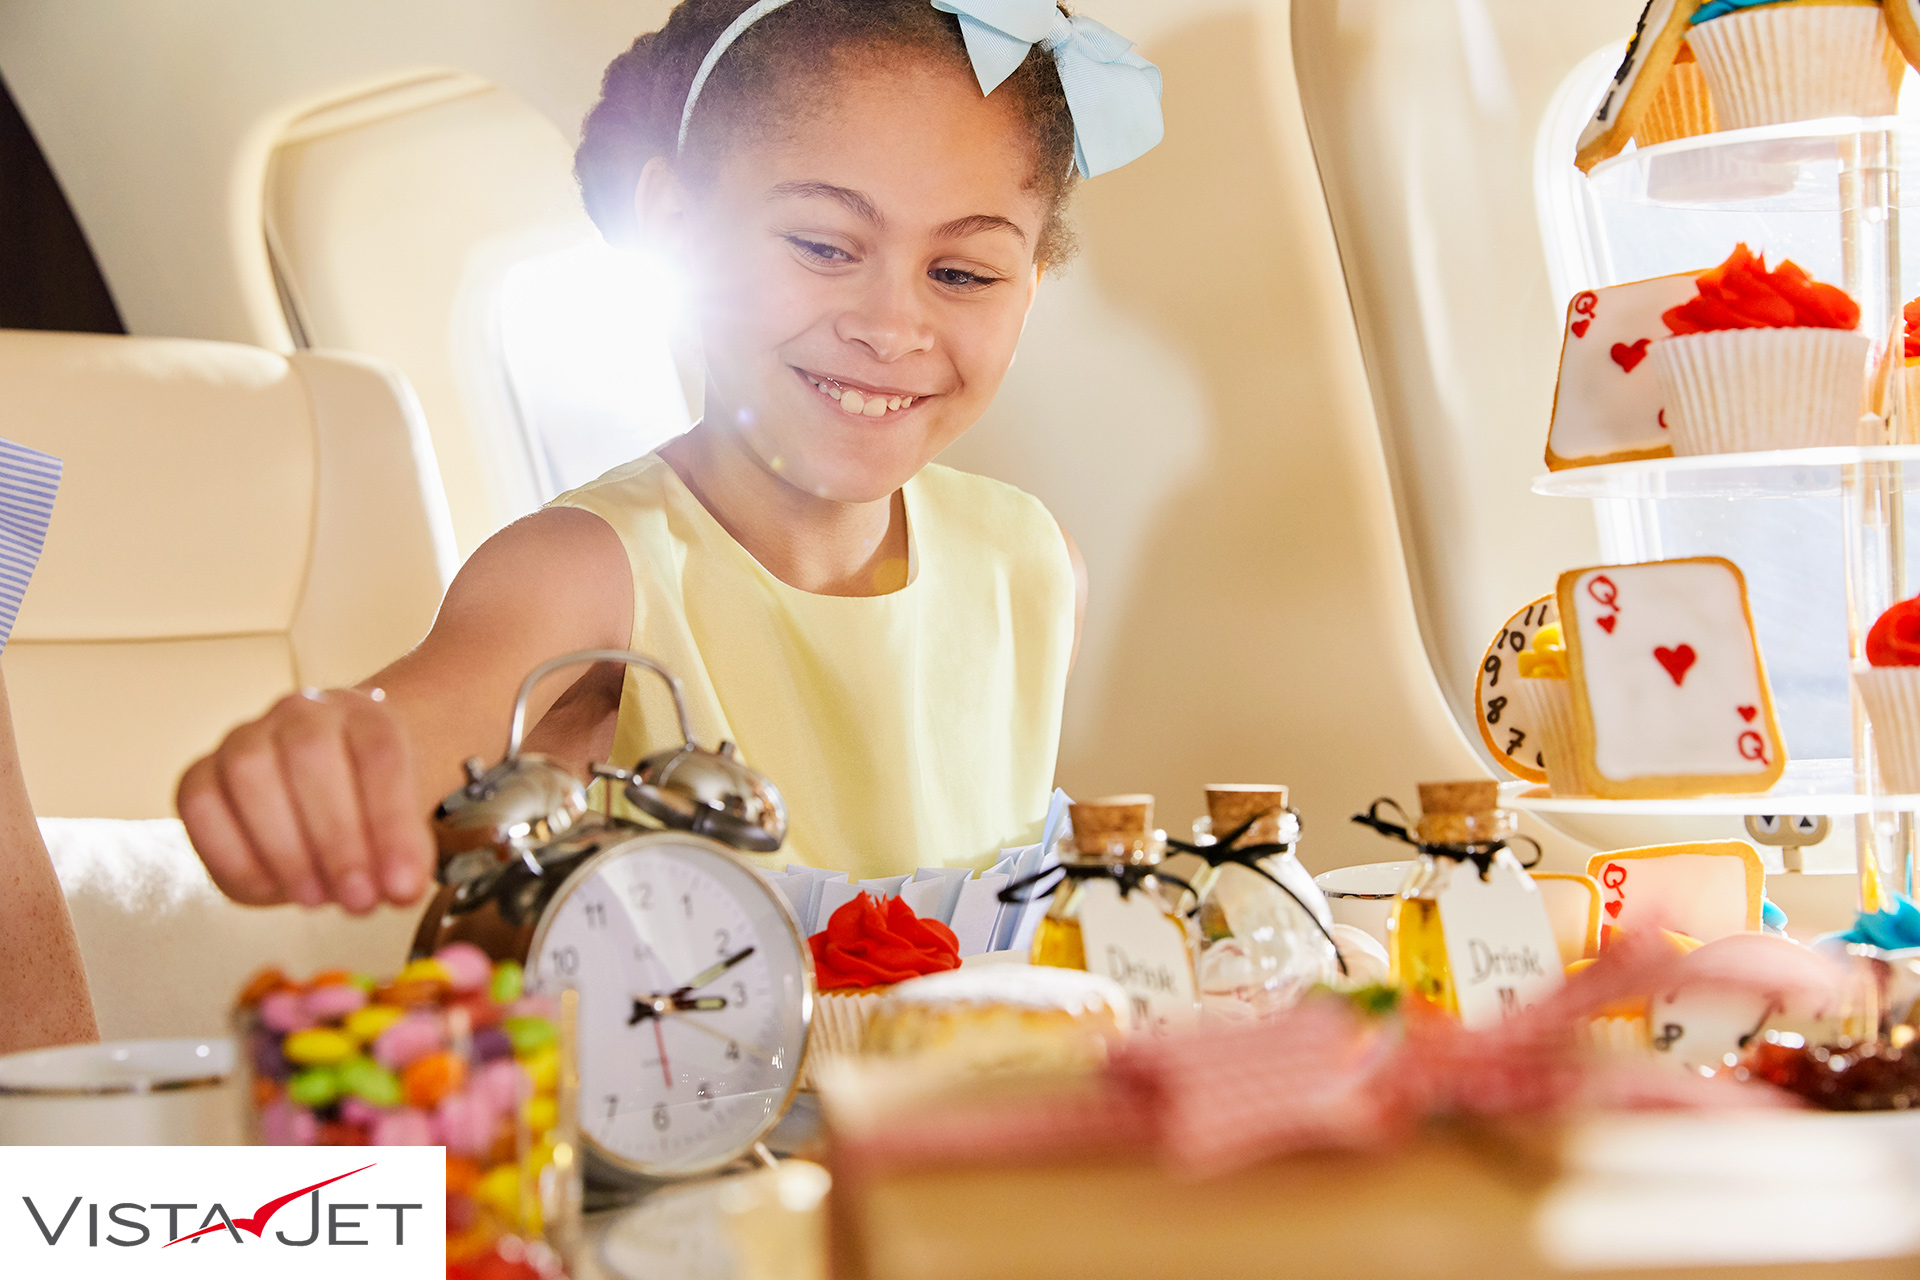 Child eating party food on a plane